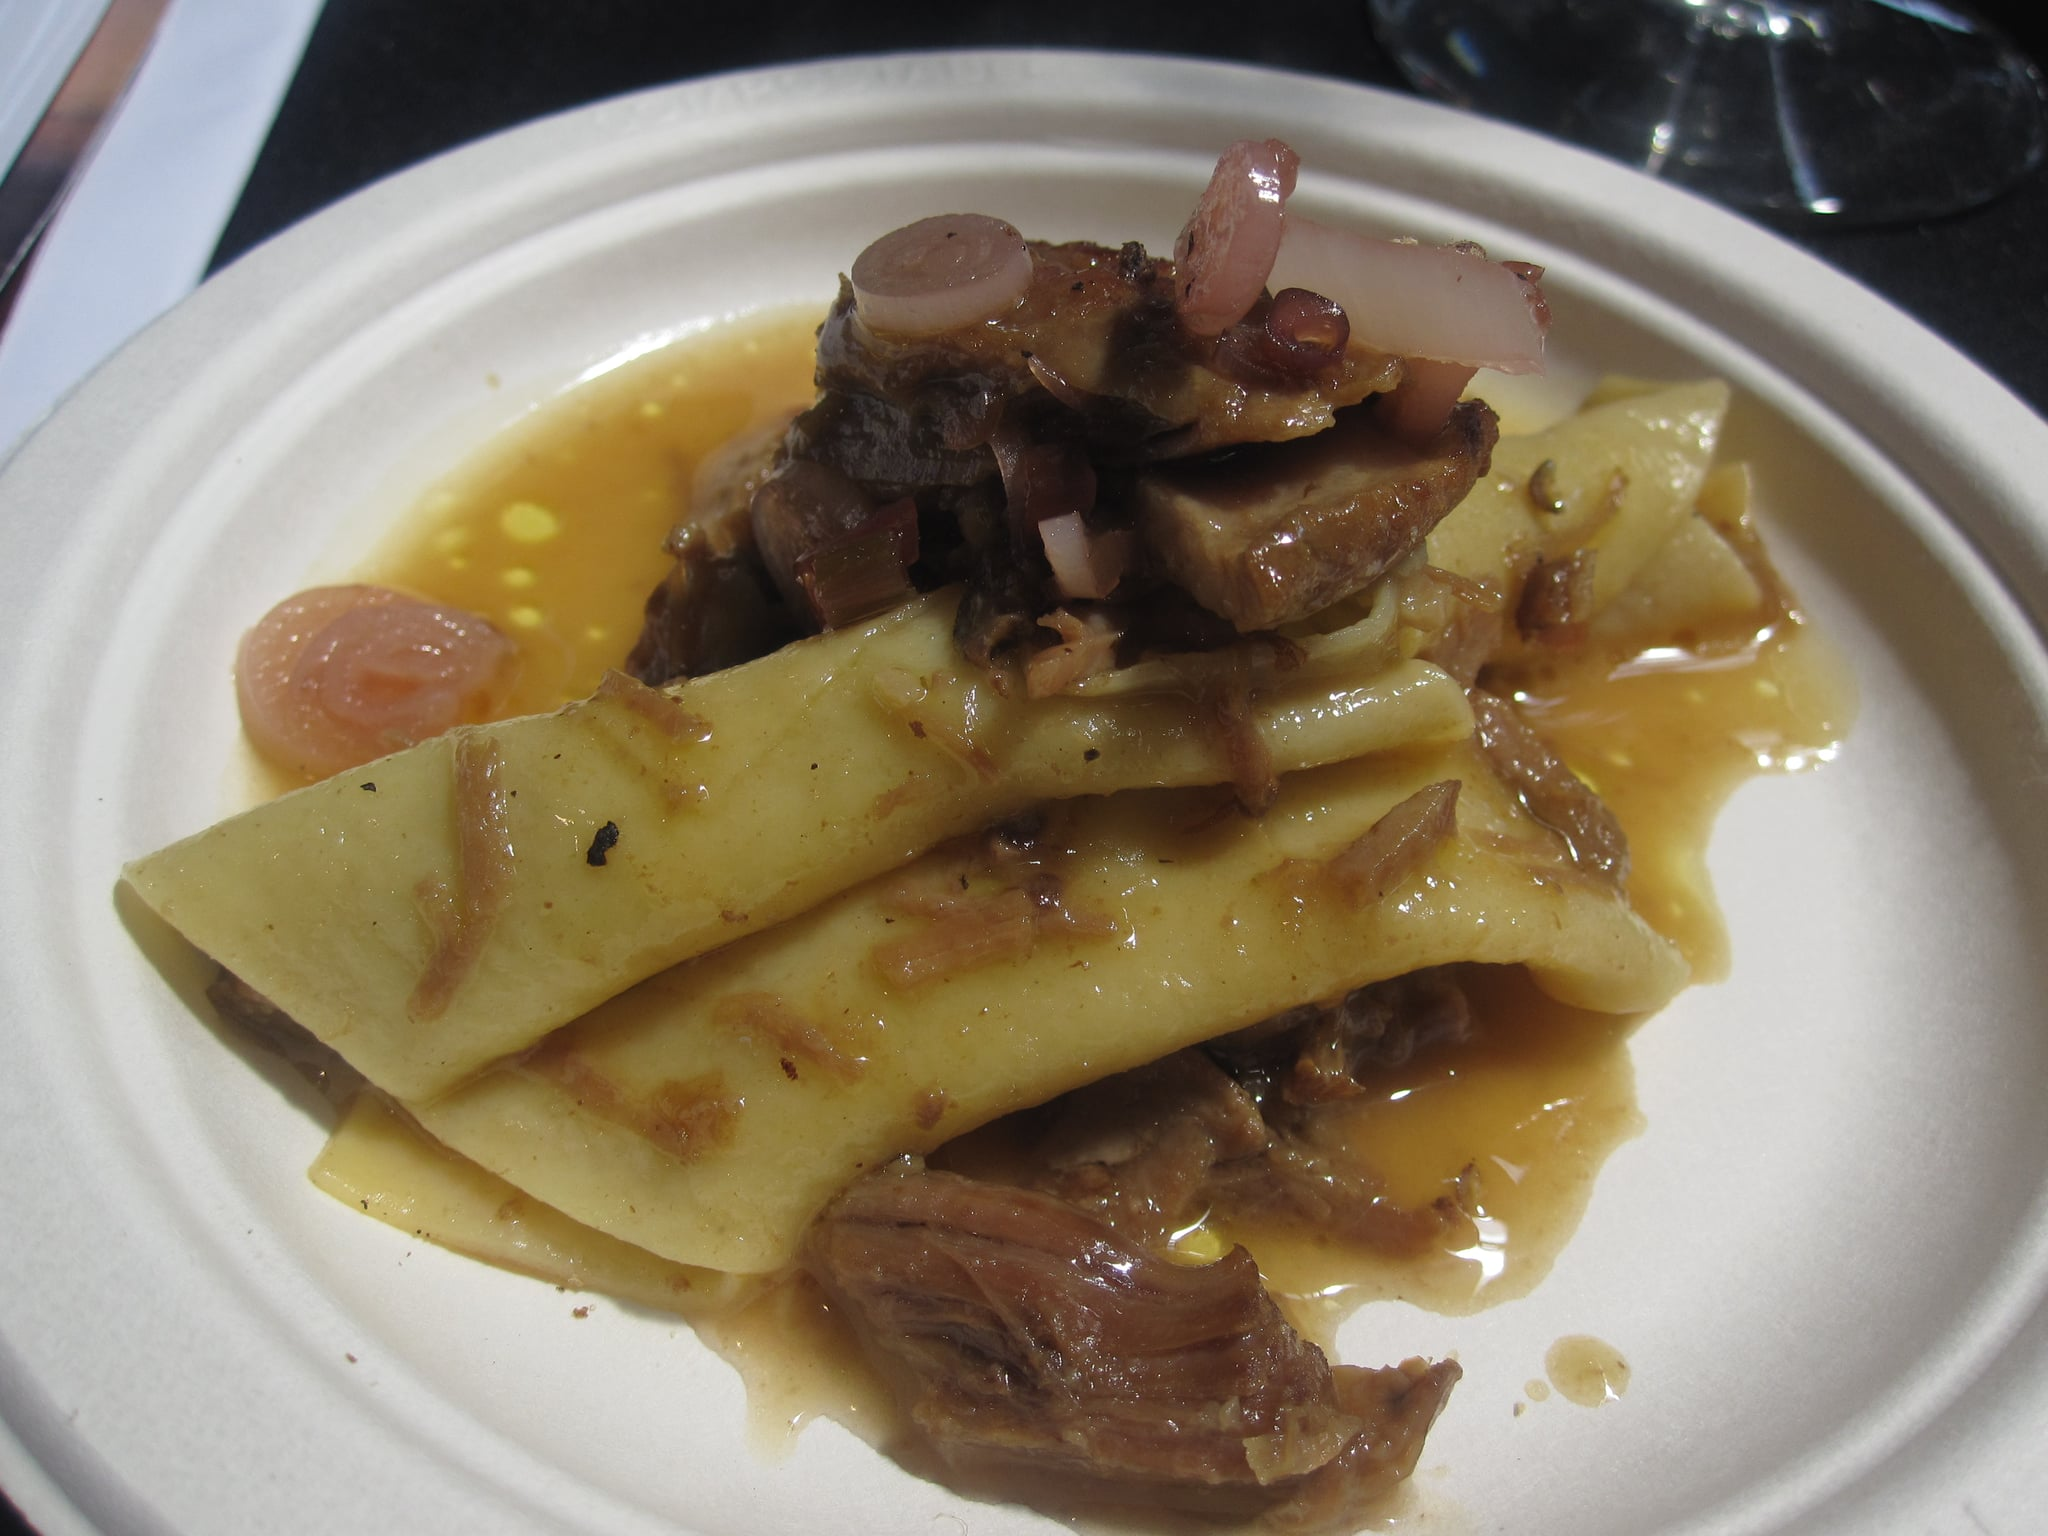 Hand-rolled pasta with braised lamb shoulder was so amazing I could have eaten an entire plateful.